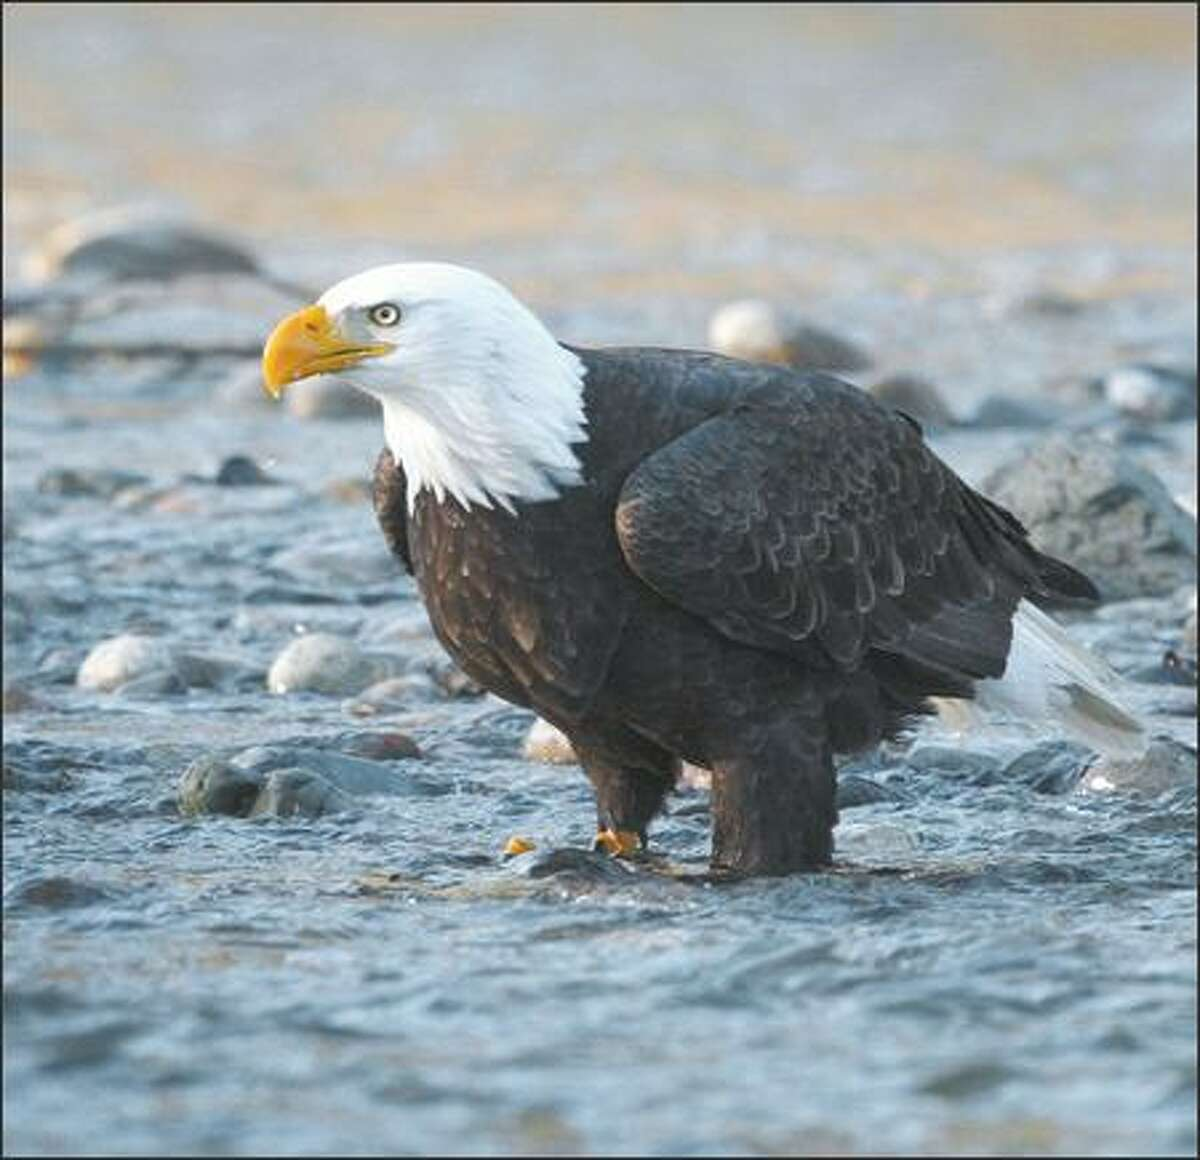 A wintering bald eagle looks up while feeding on chum salmon along the Skagit River.